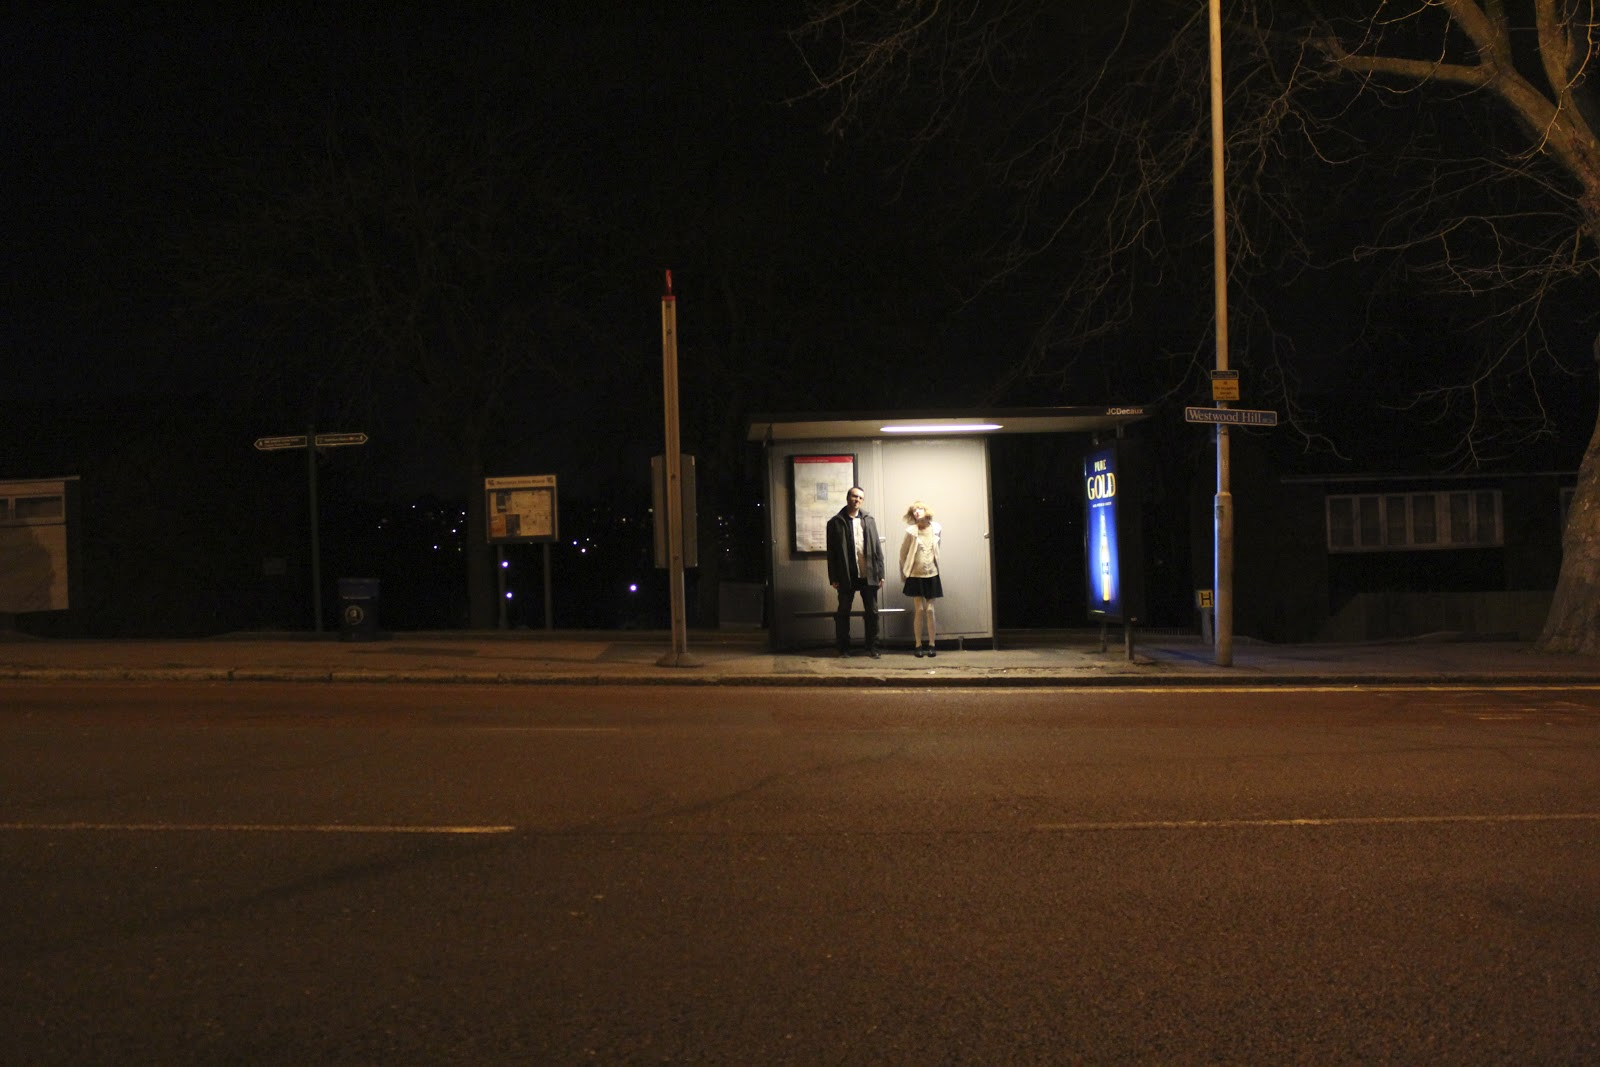 A man and woman standing up straight at a bus stop. Long shot.